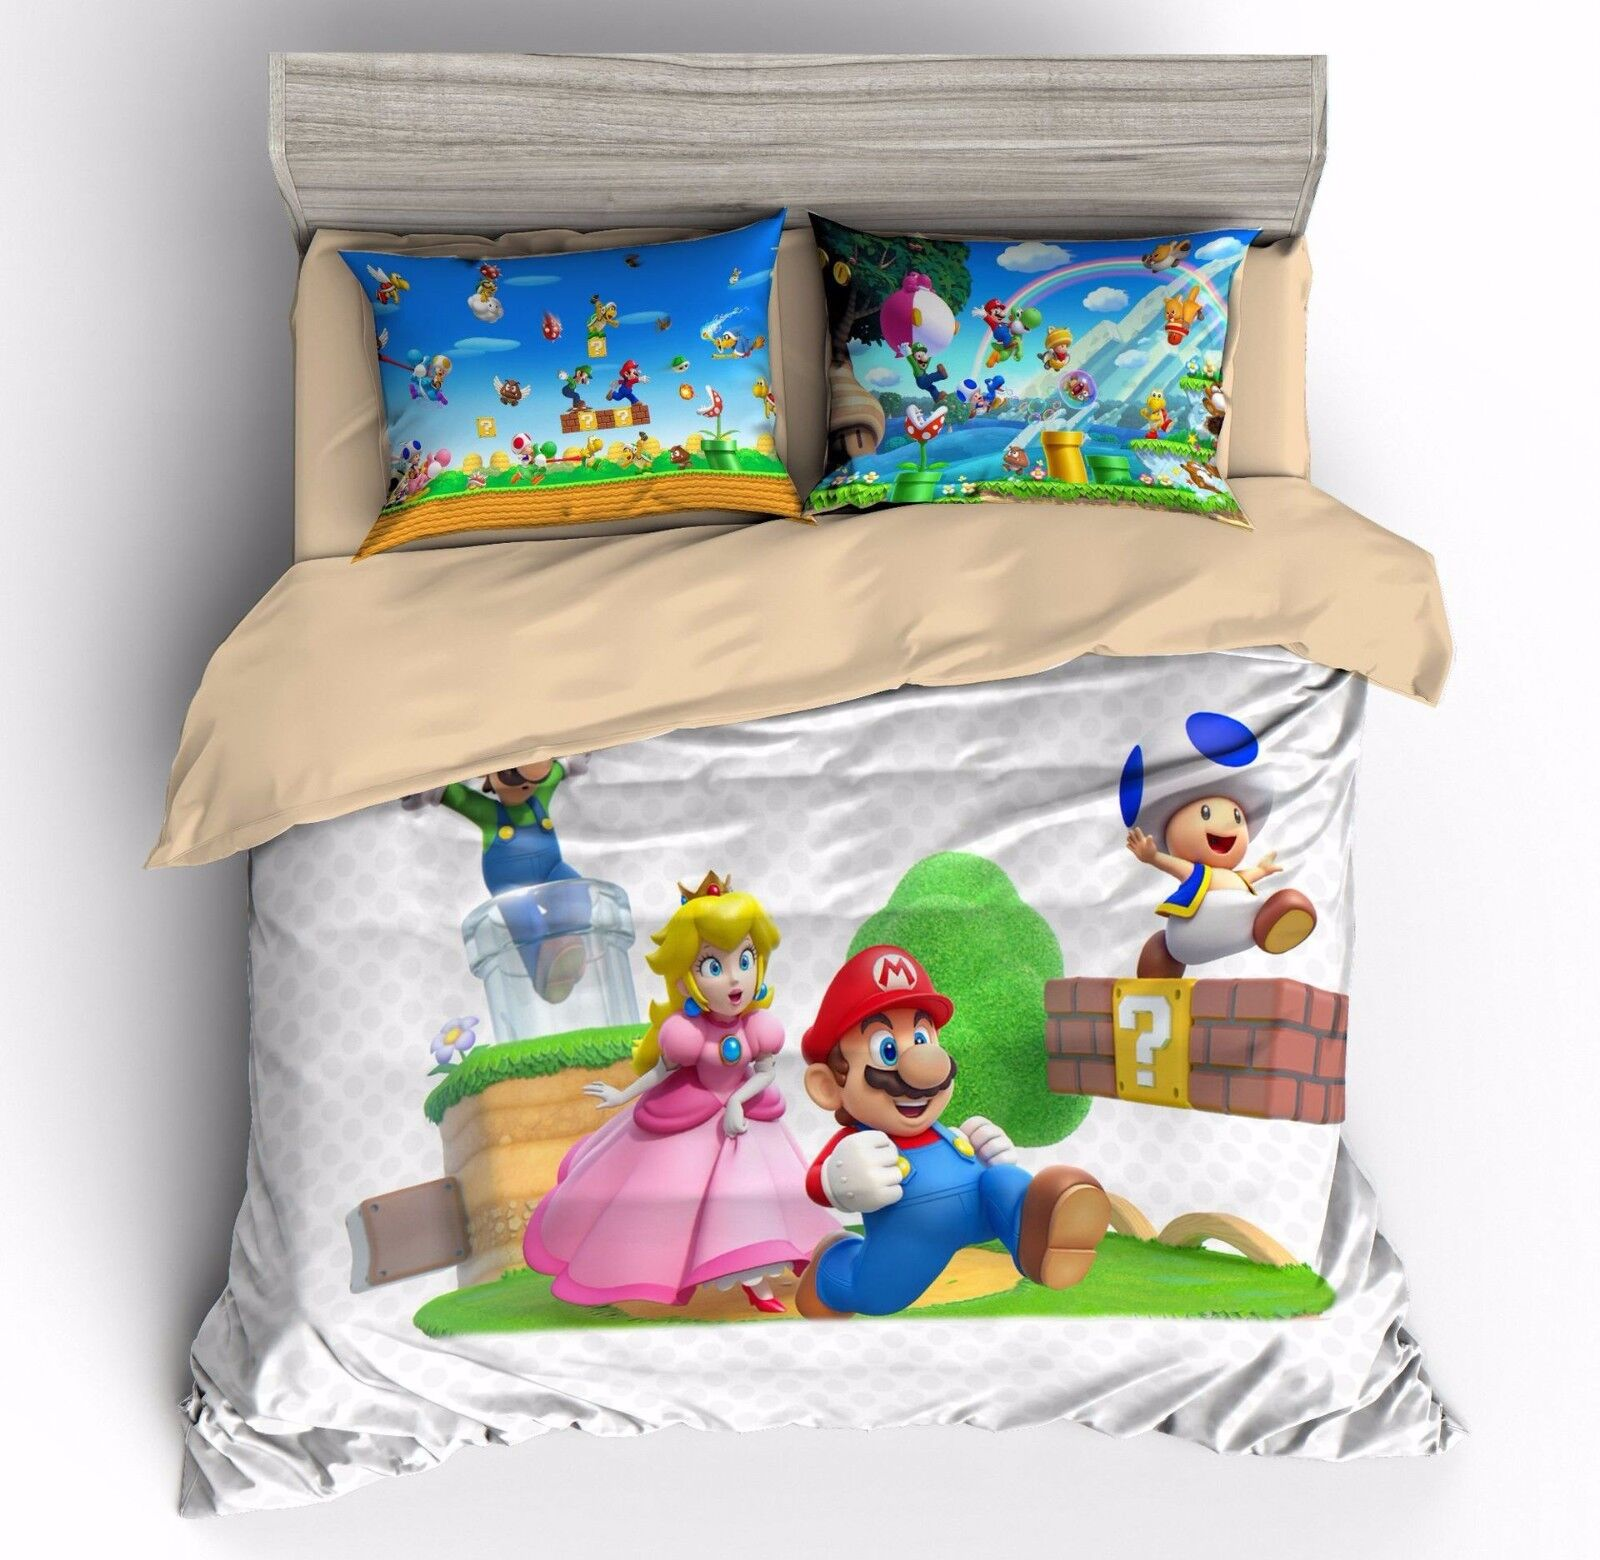 Super Mario Princess Peach Kids Bedding Duvet Cover Sets Quilt Cover Pillow Sham